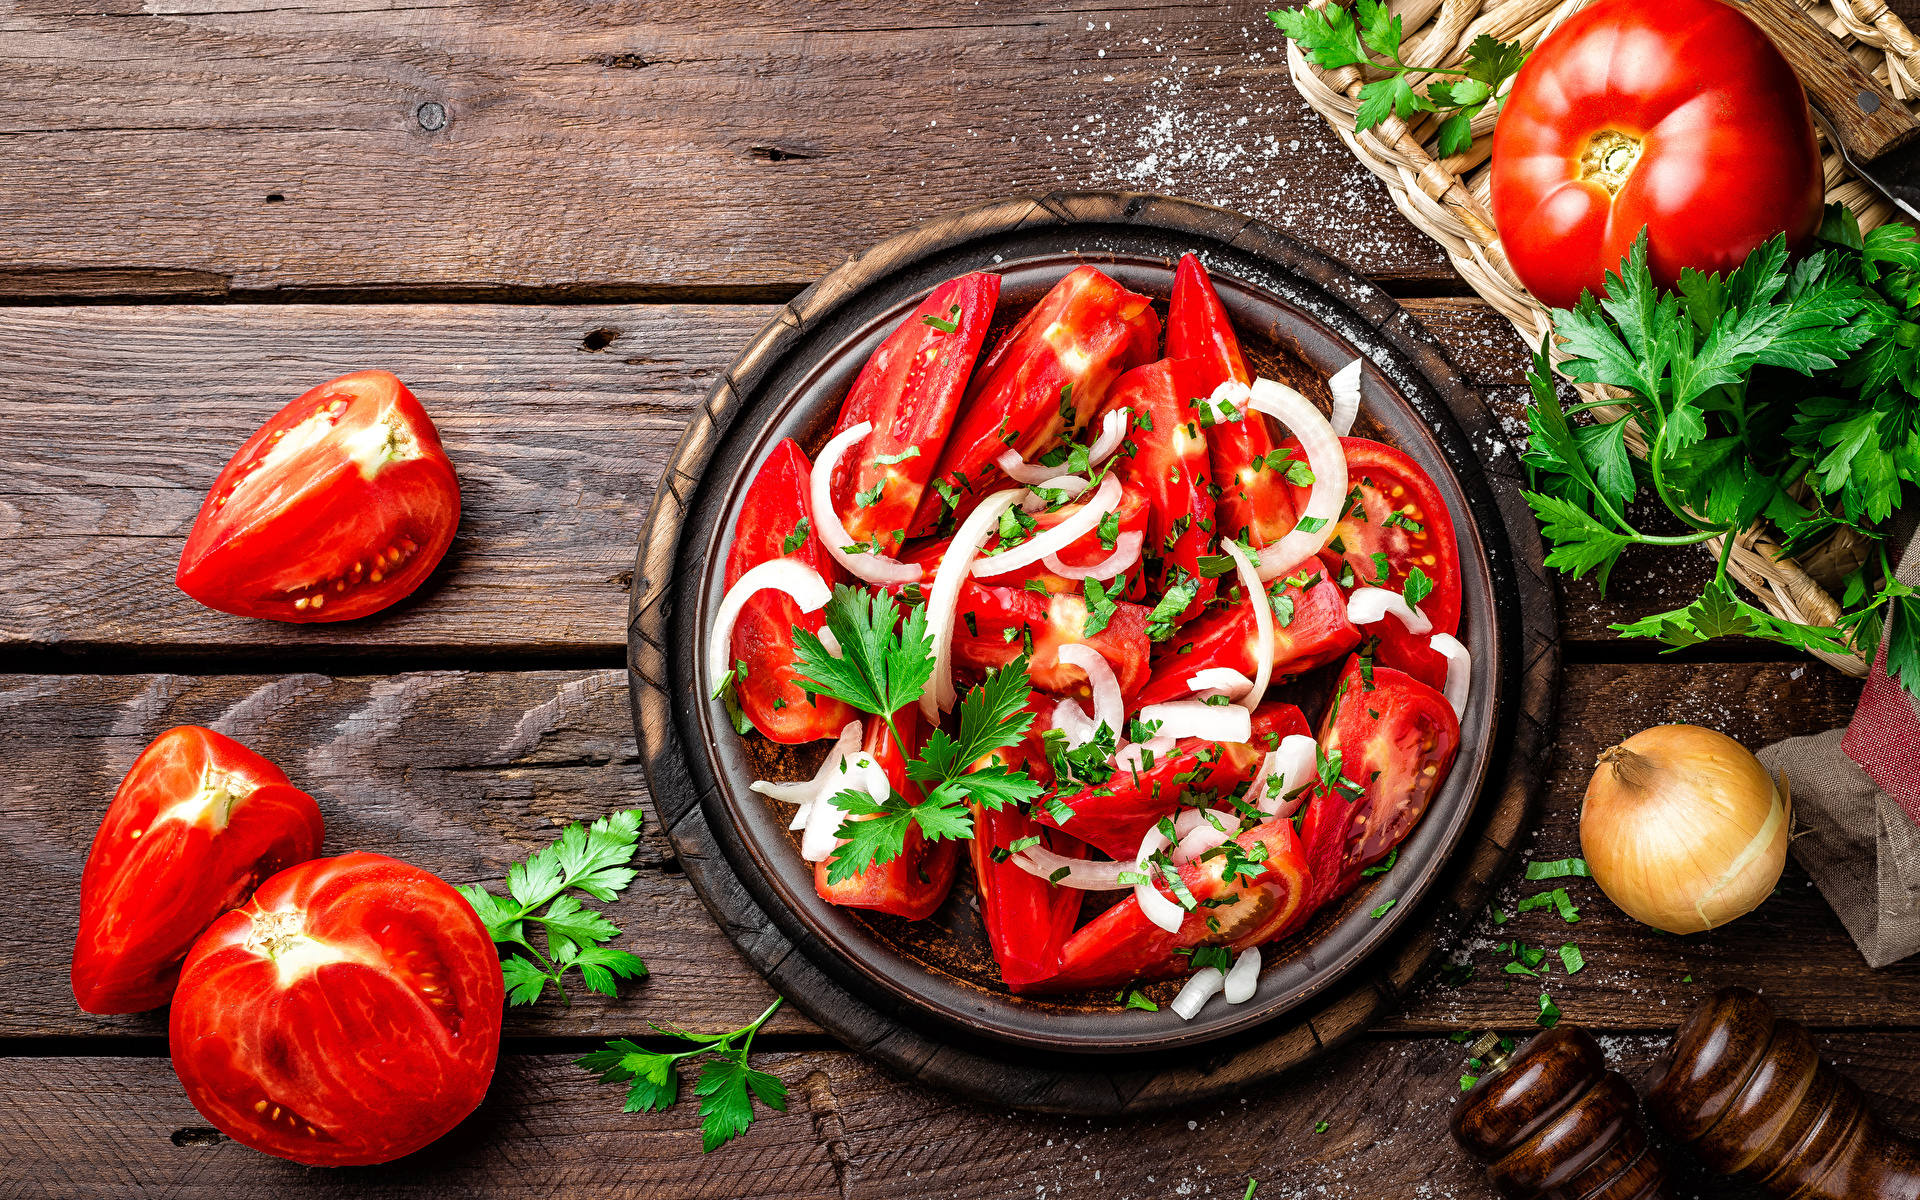 Images Tomatoes Food Salads Vegetables Wood planks 1920x1200 boards